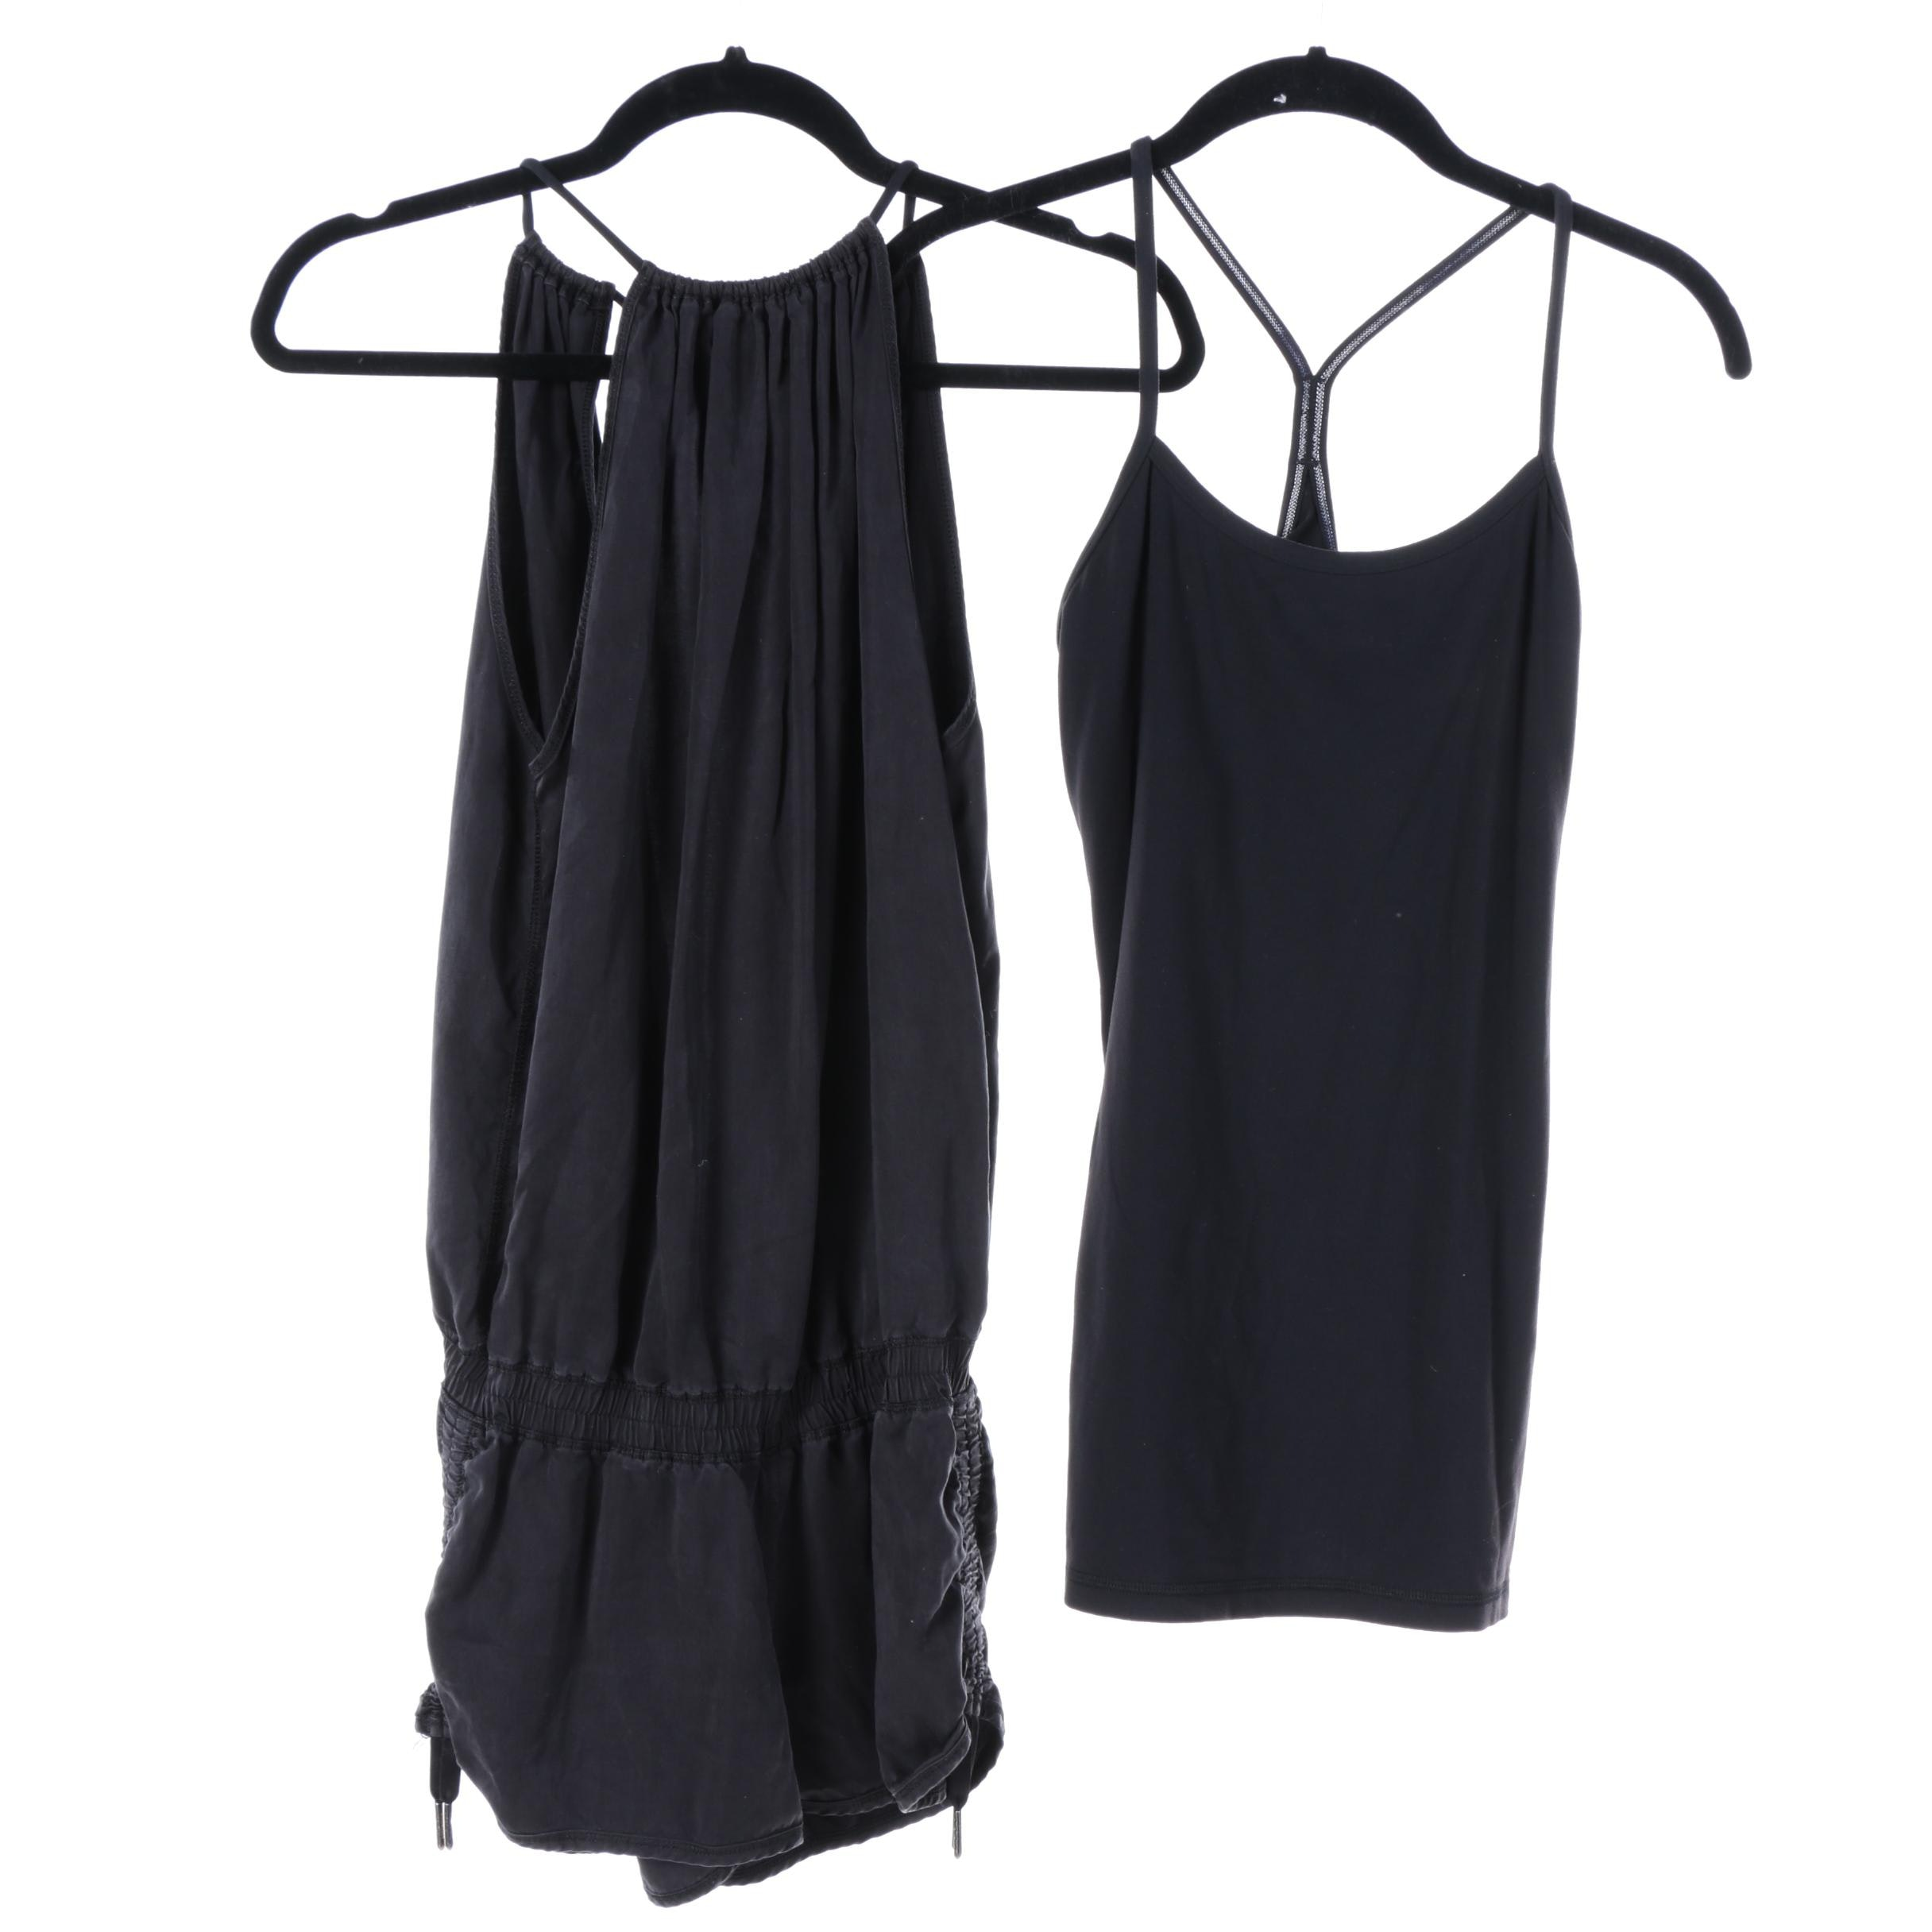 Women's Lululemeon Tank Top and Romper